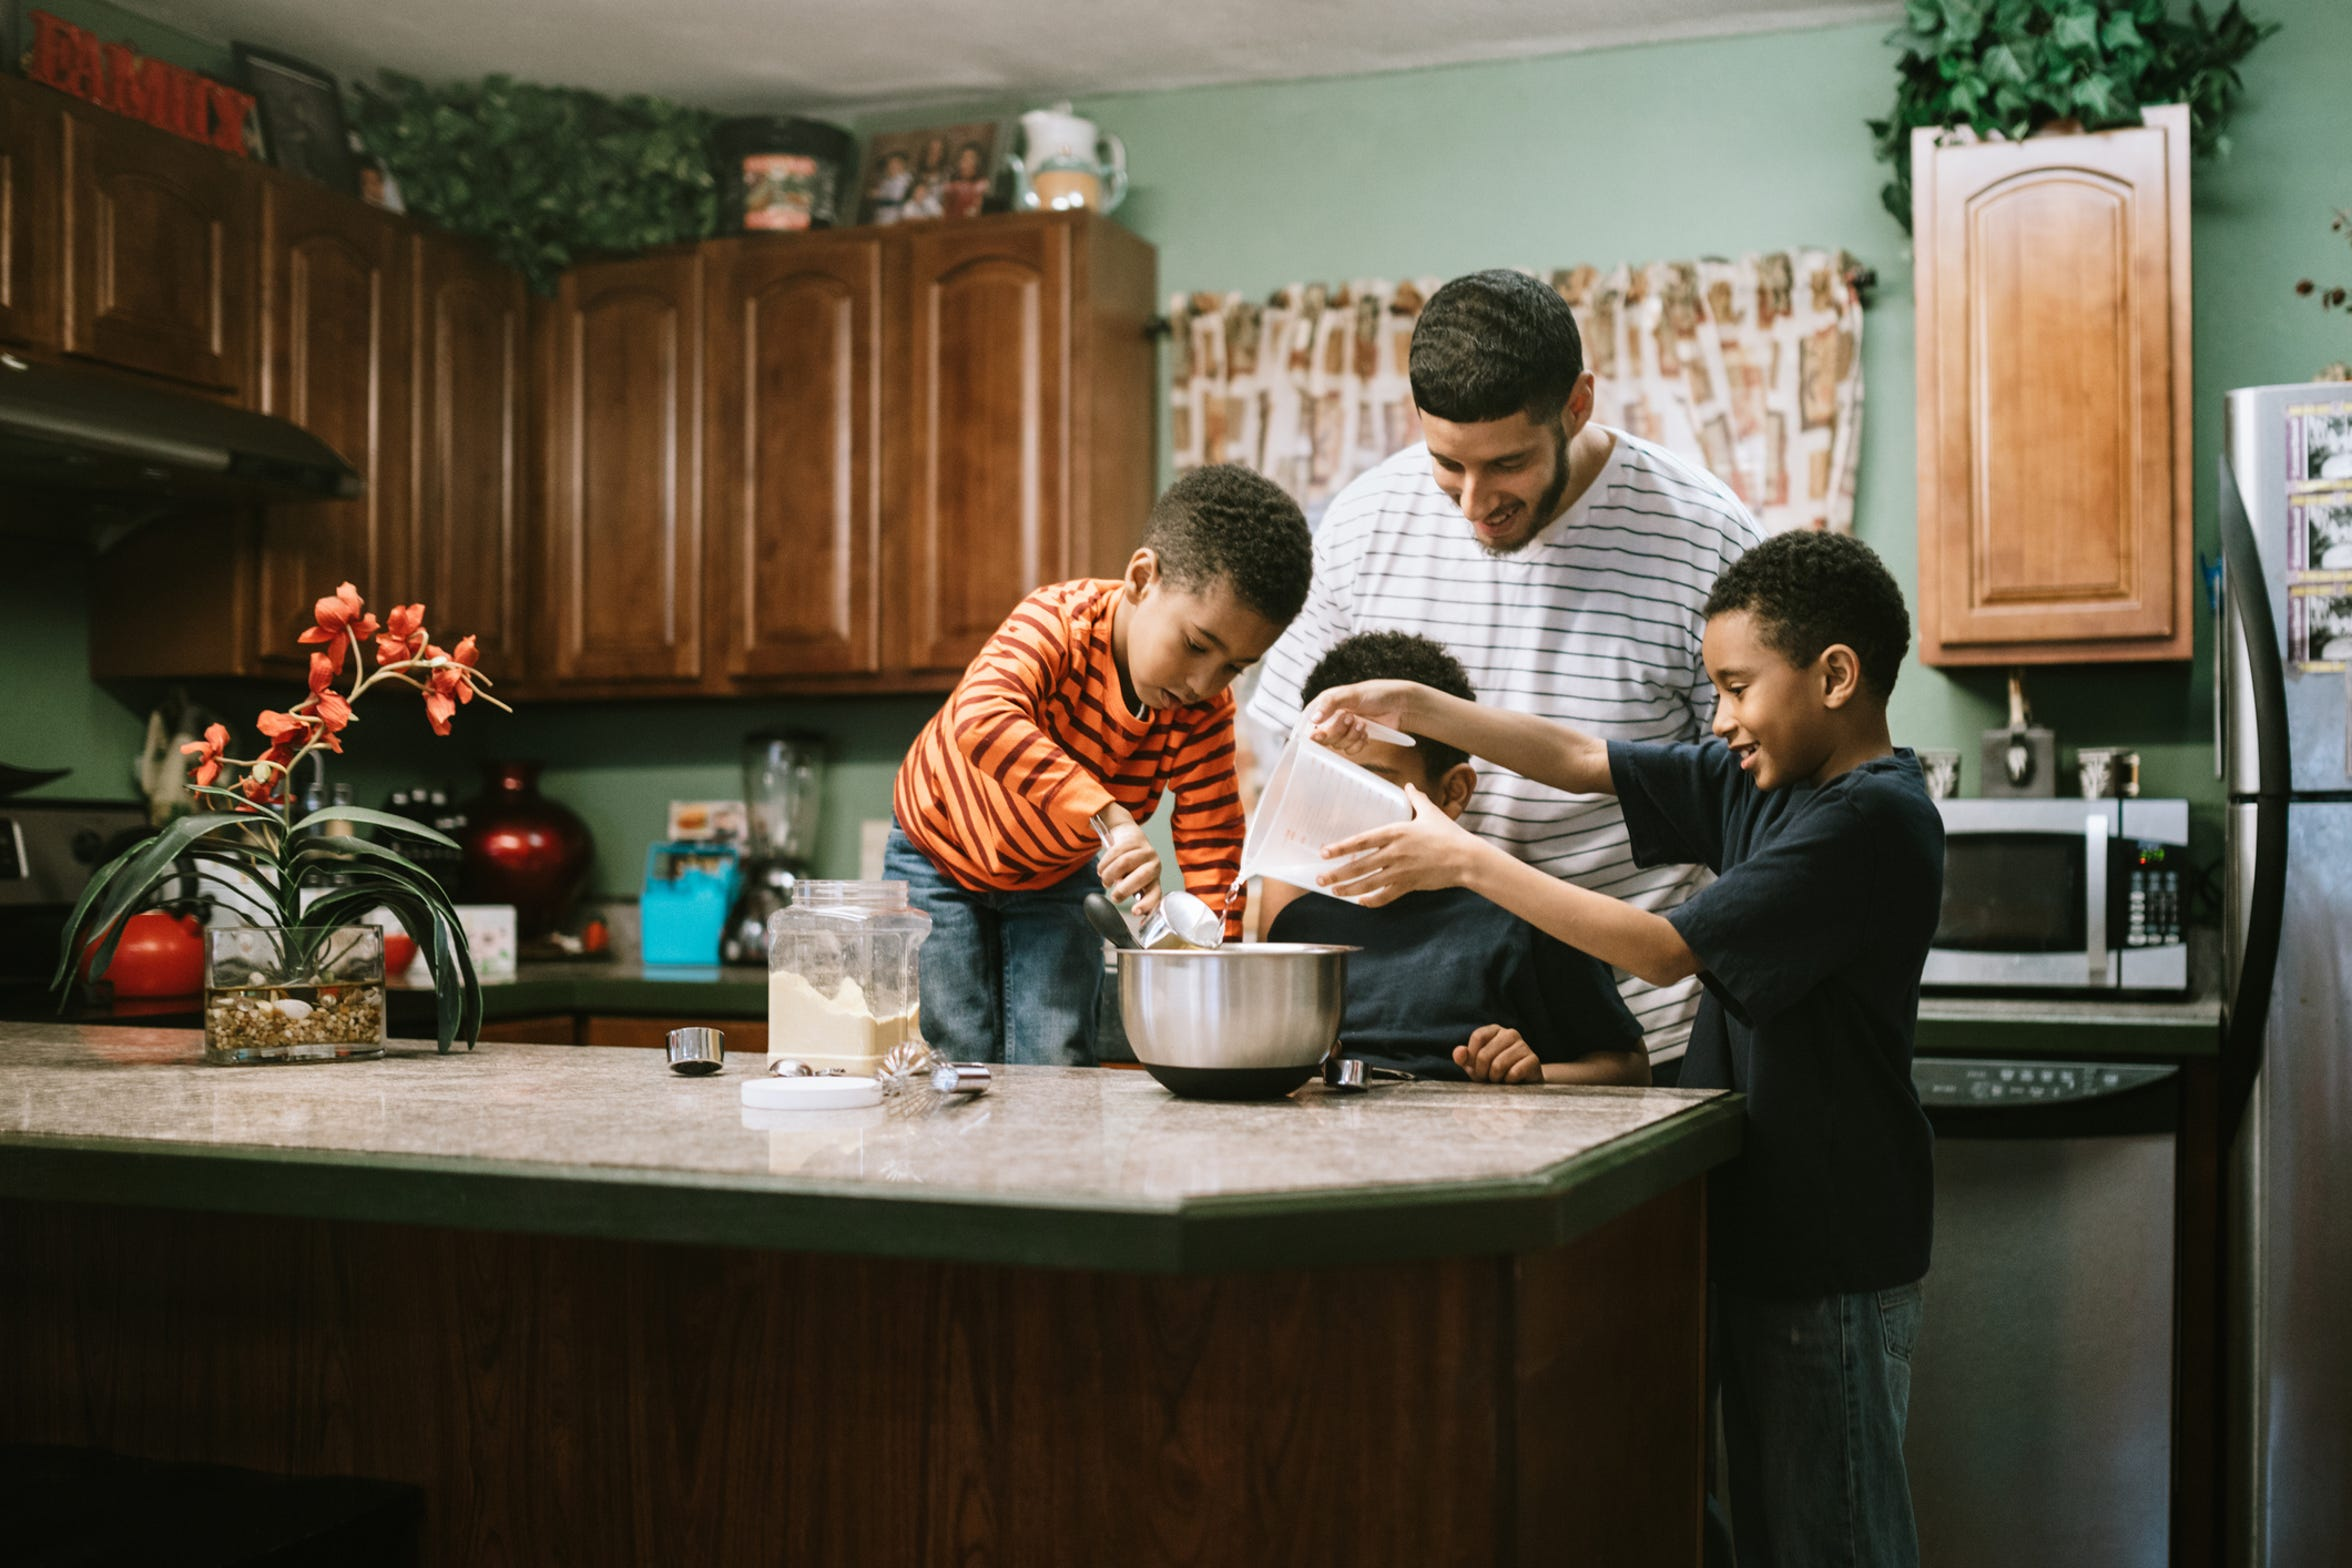 Focus on what you can control, such as teaching your children how to cook a favorite family dinner.